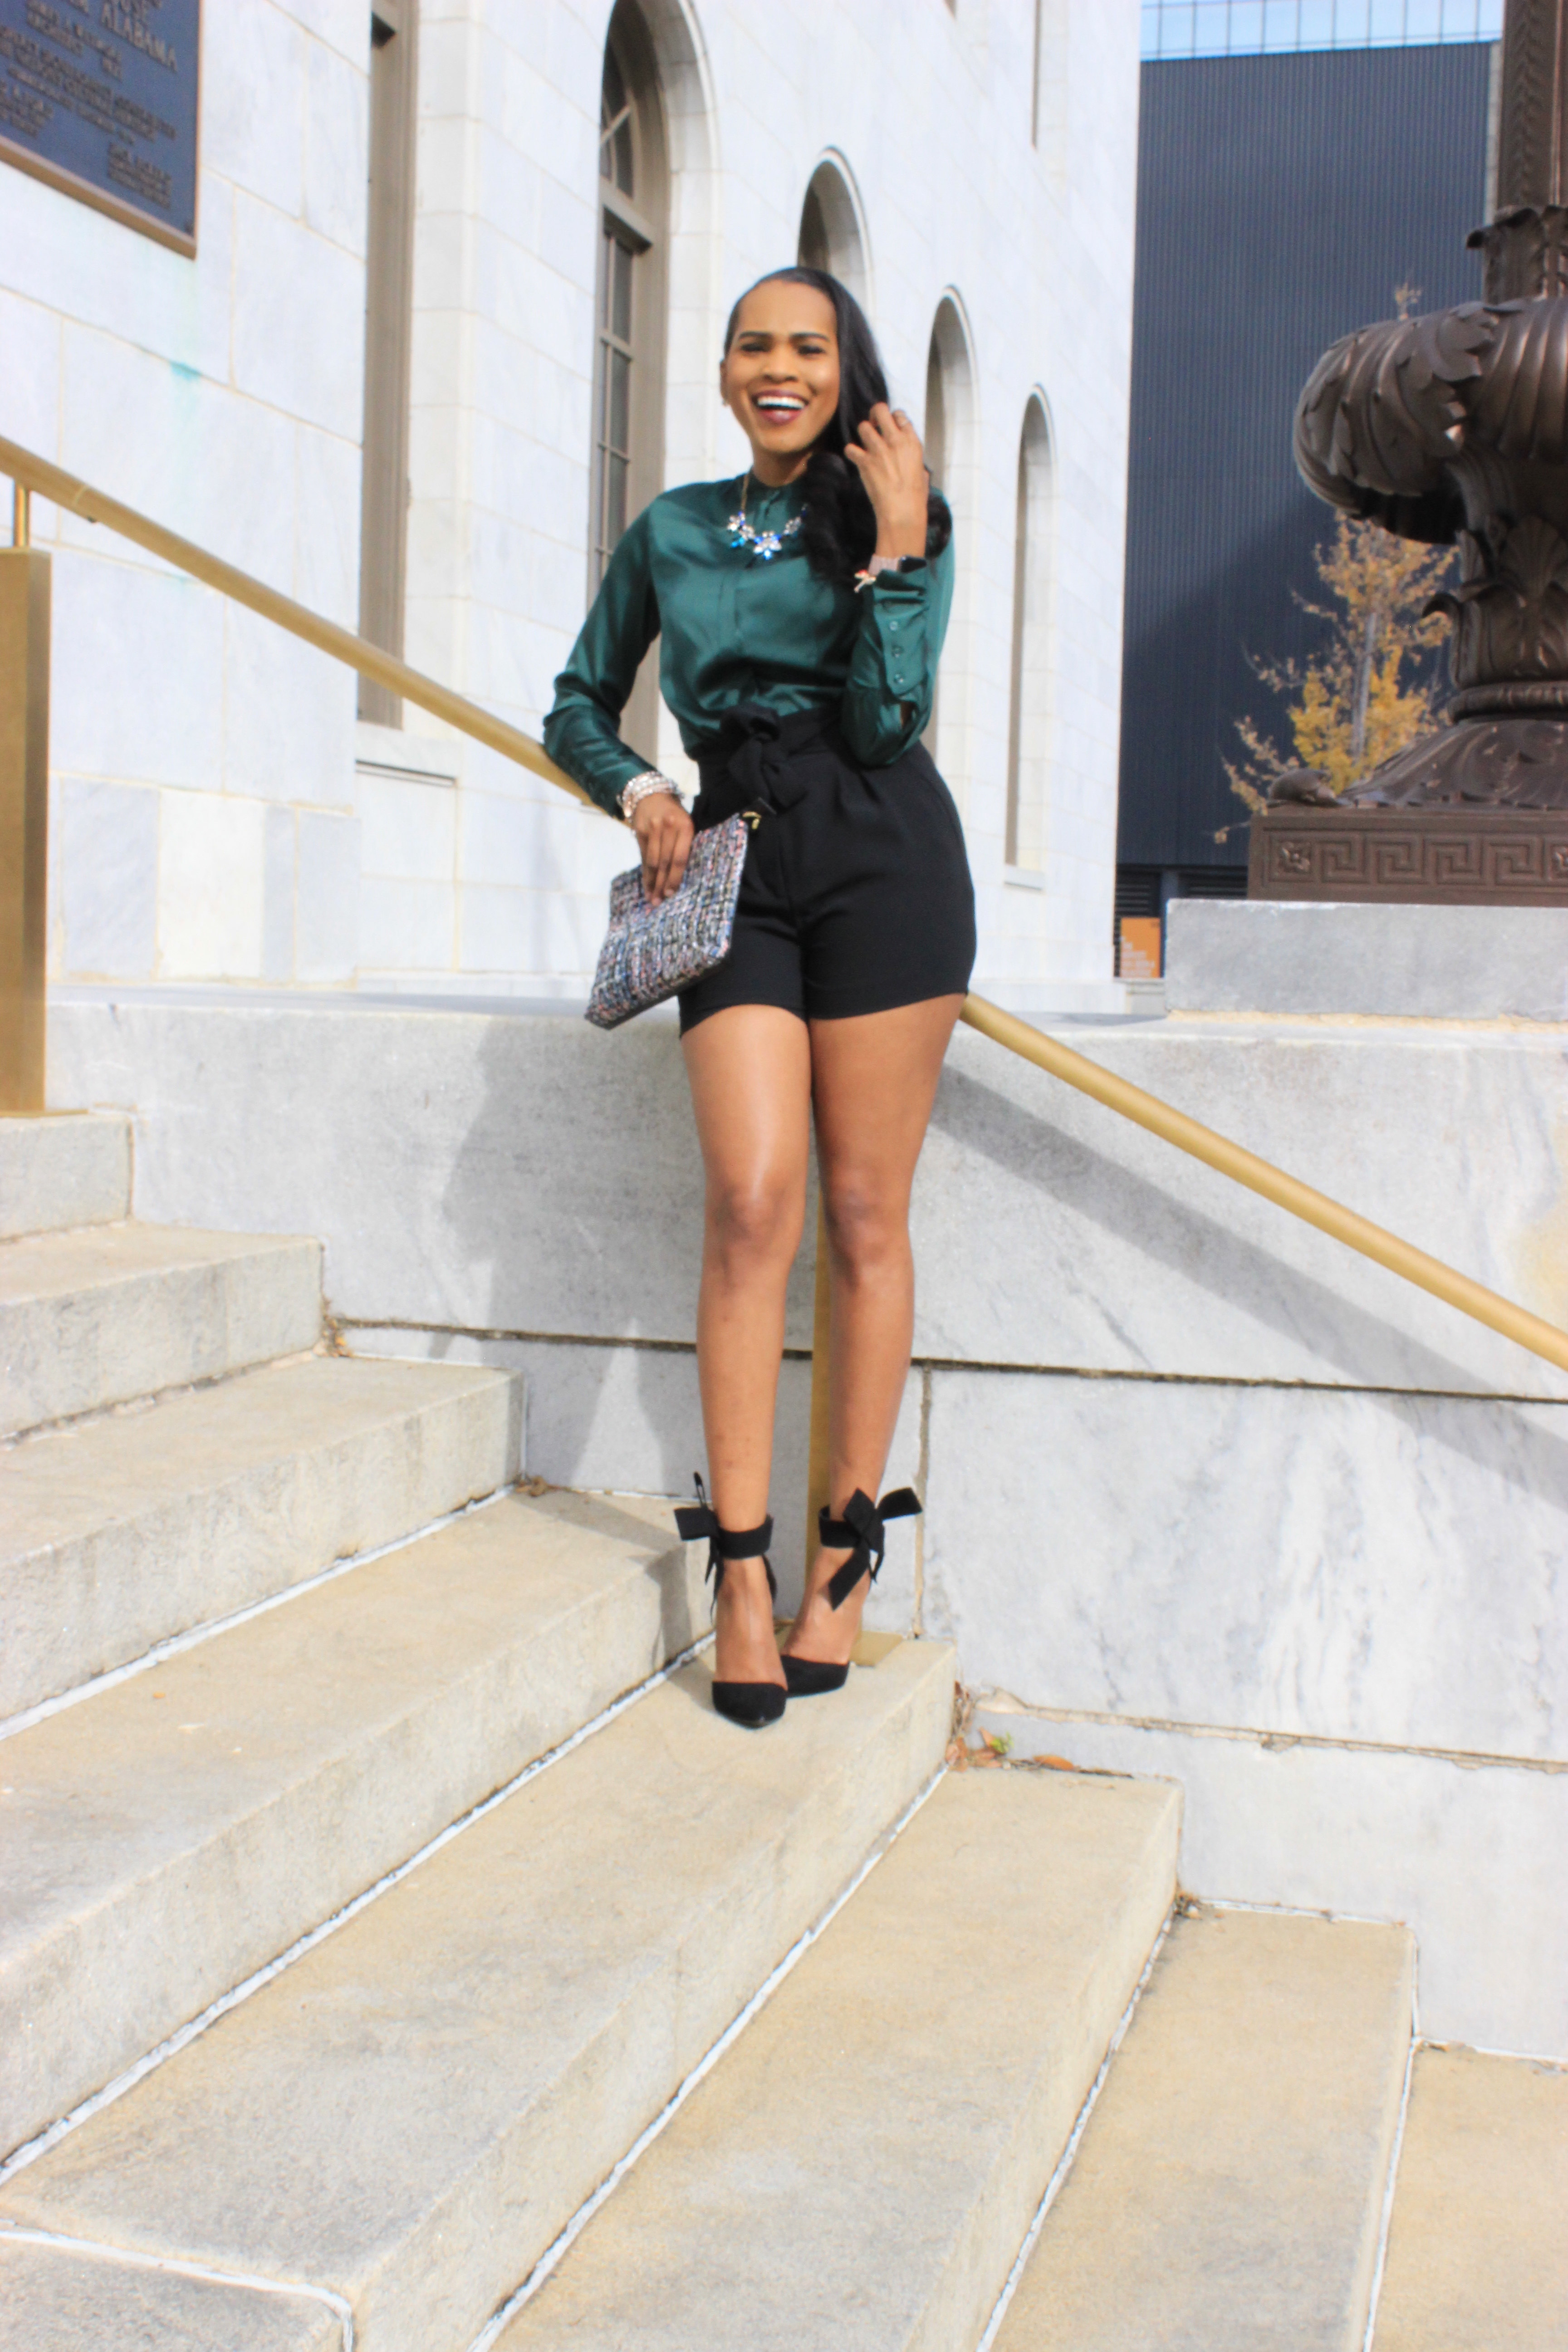 Style-Files-HM-Dark-Green-Satin-button-front-blouse-black-hm-tie-front-shorts-justfab-black-Giada-bow-heels- Gianni-Bini-Lizzy-Notch-Lapel-Collar- with-feather-hem-christmas-style-inspiration-what-to-wear-duirng-the-holidays-oohlalablog-9